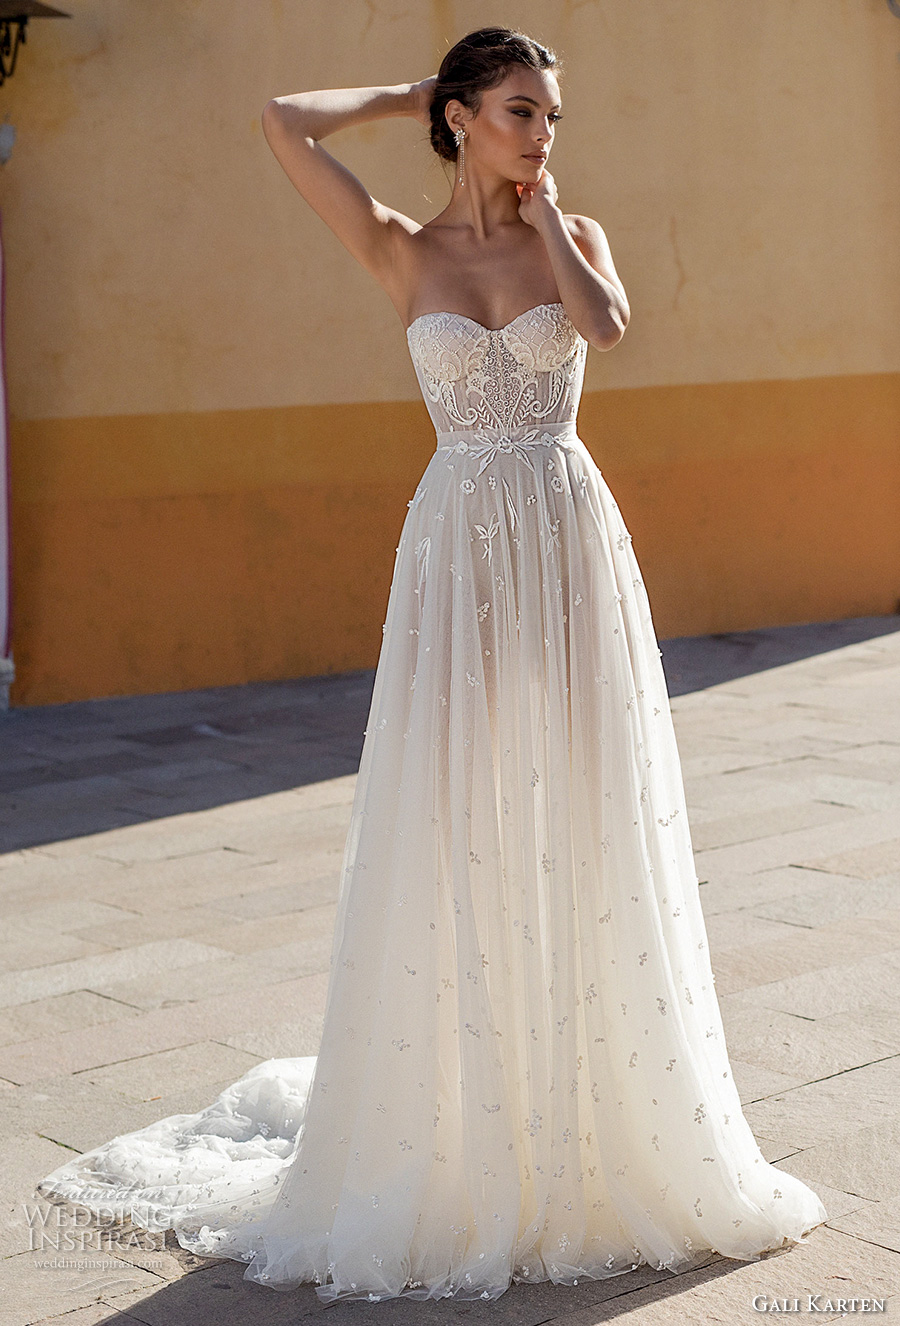 Gali Karten 2018 Wedding Dresses - BridalPulse